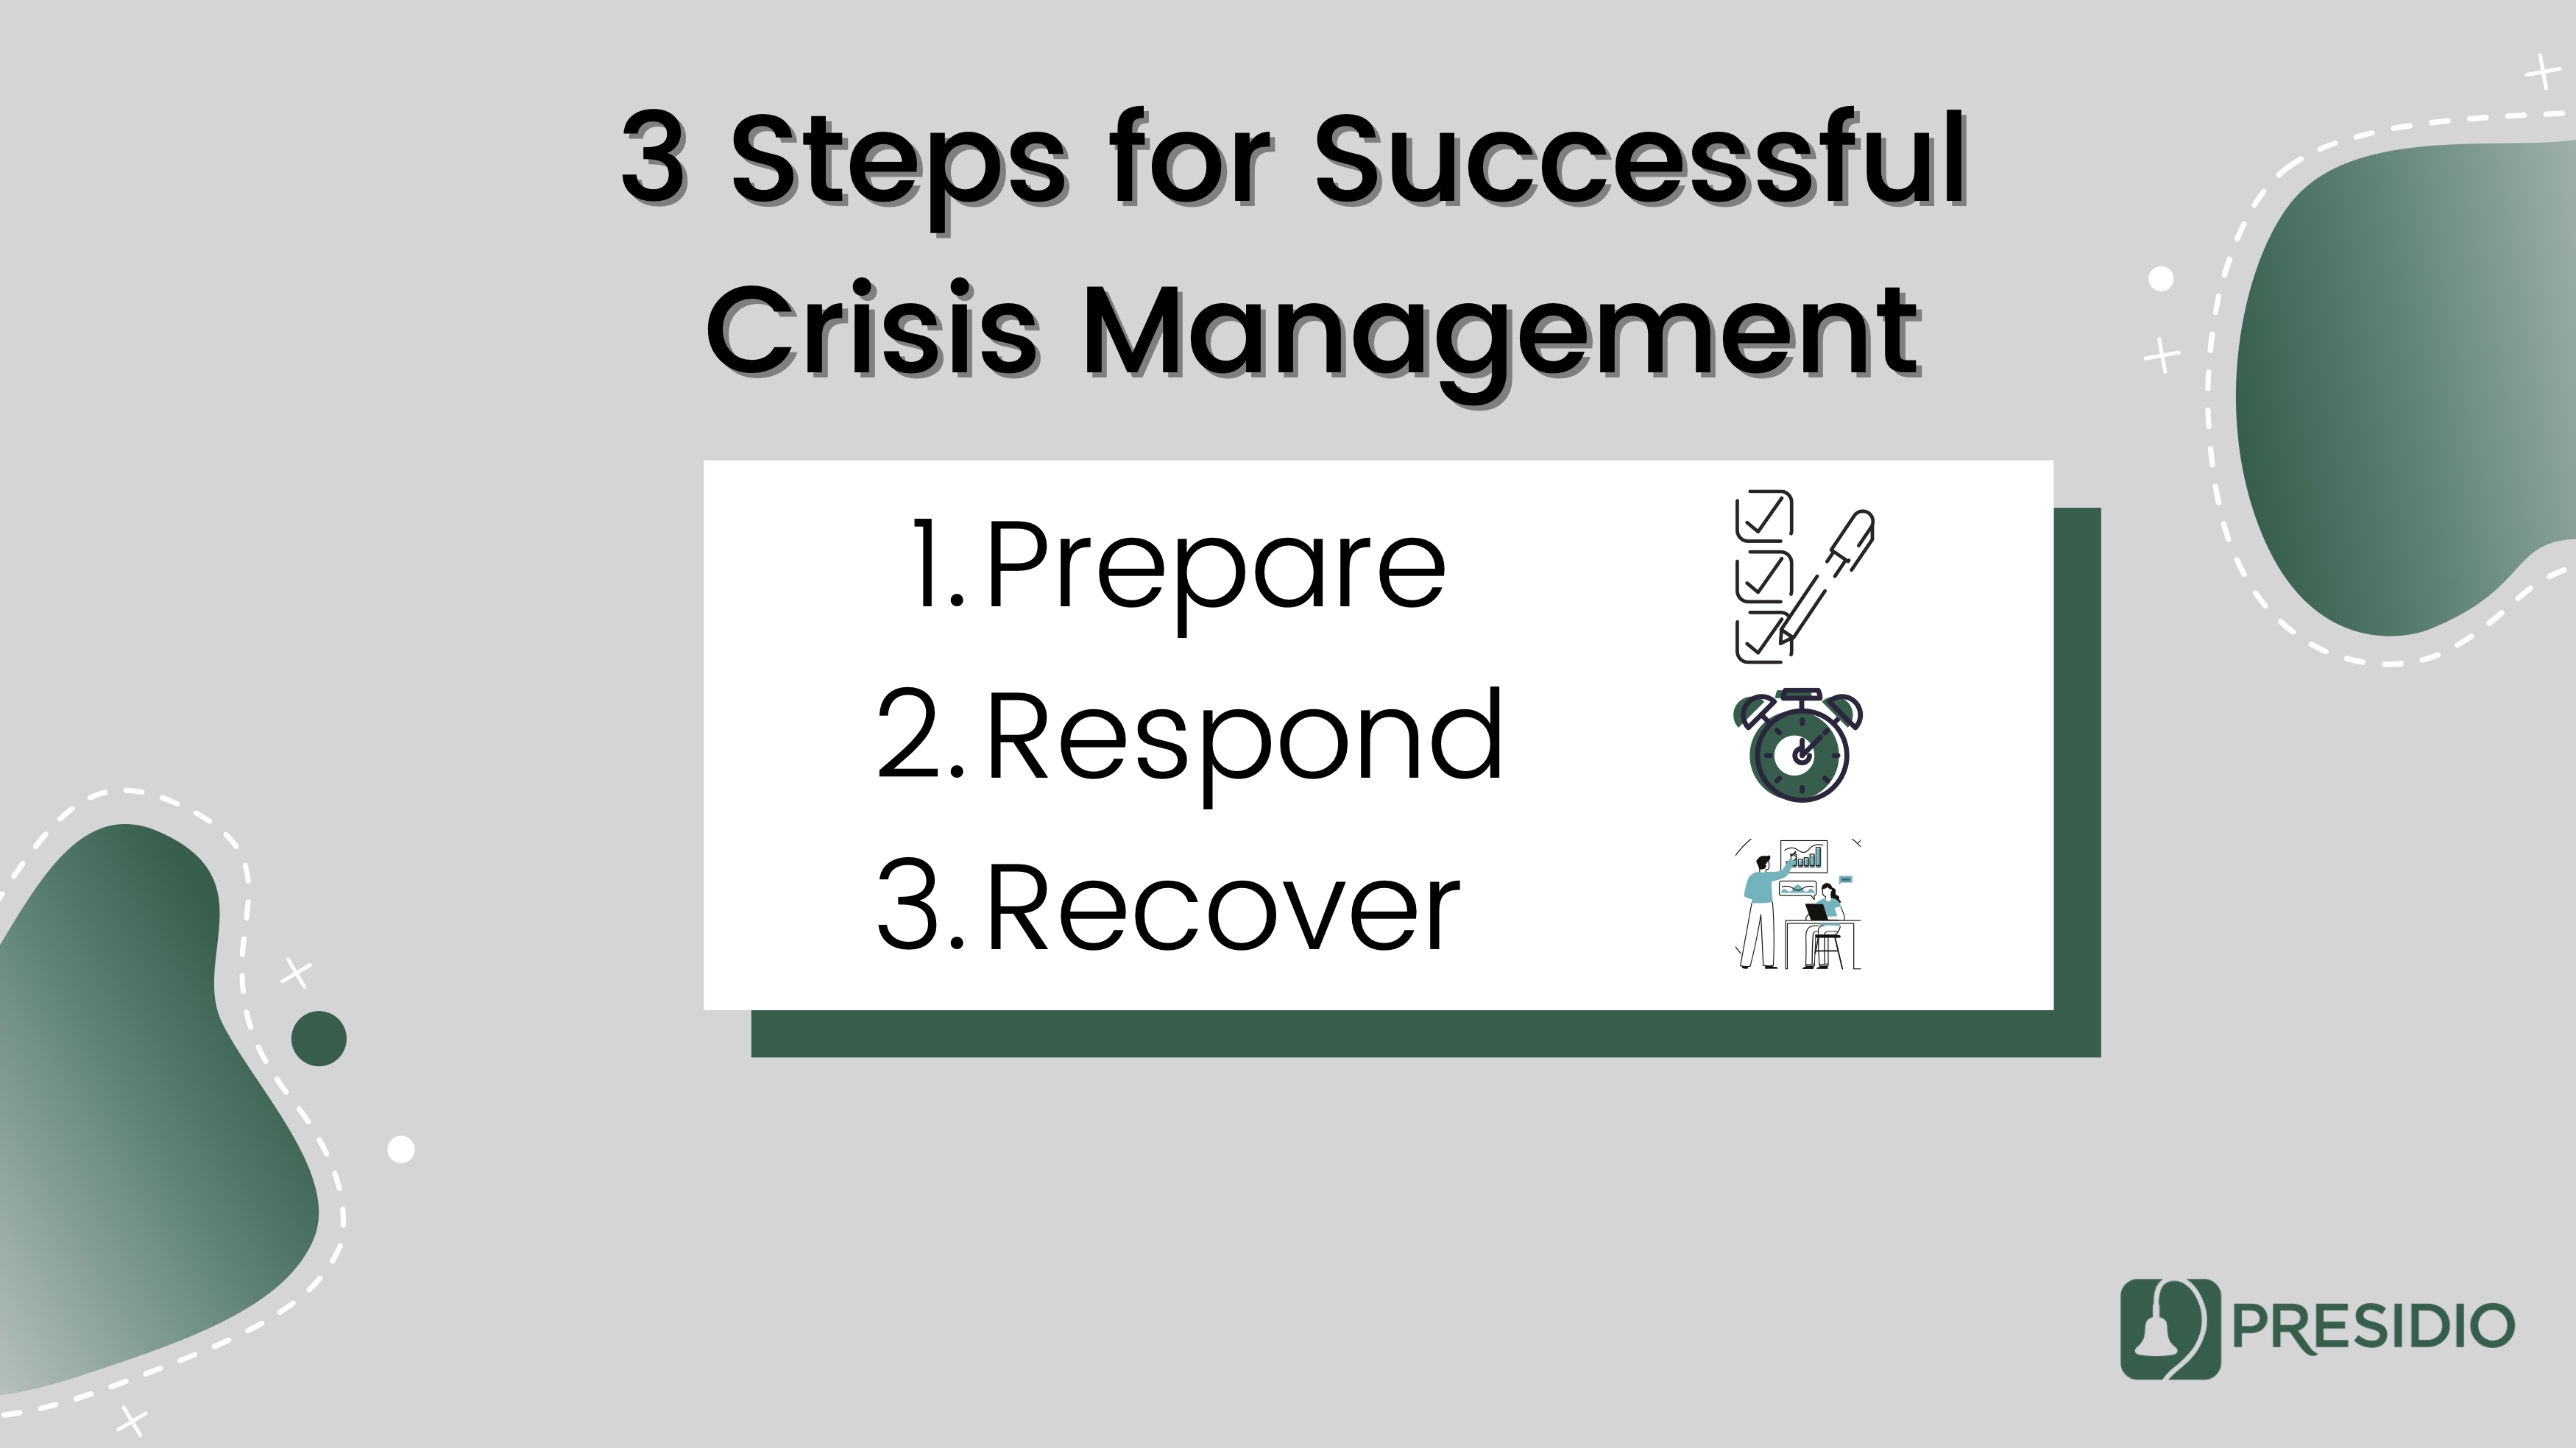 3 Steps for Successful Crisis Management